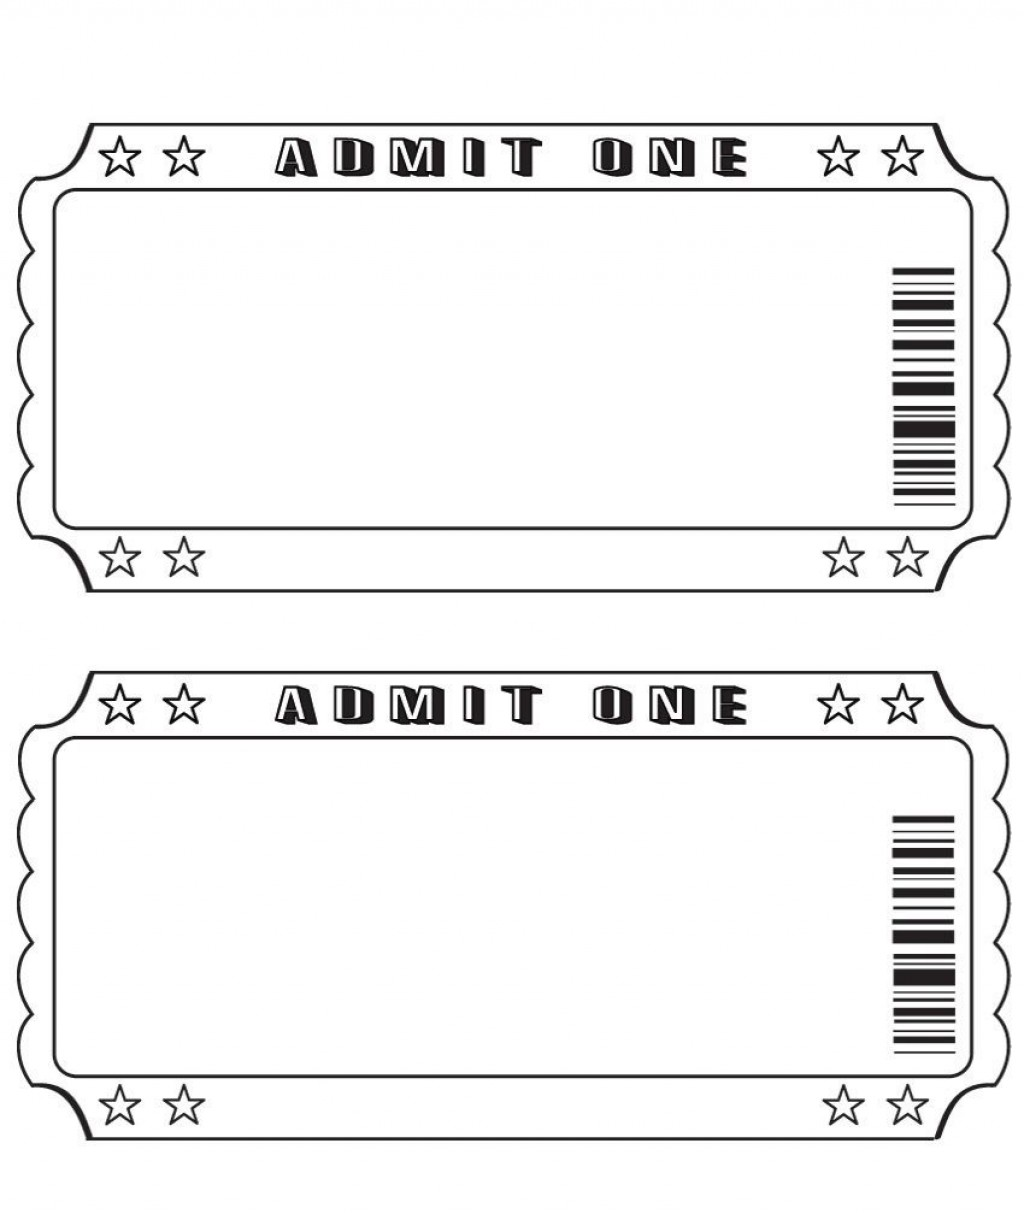 001 Fascinating Free Concert Ticket Printable Image  Template For GiftLarge